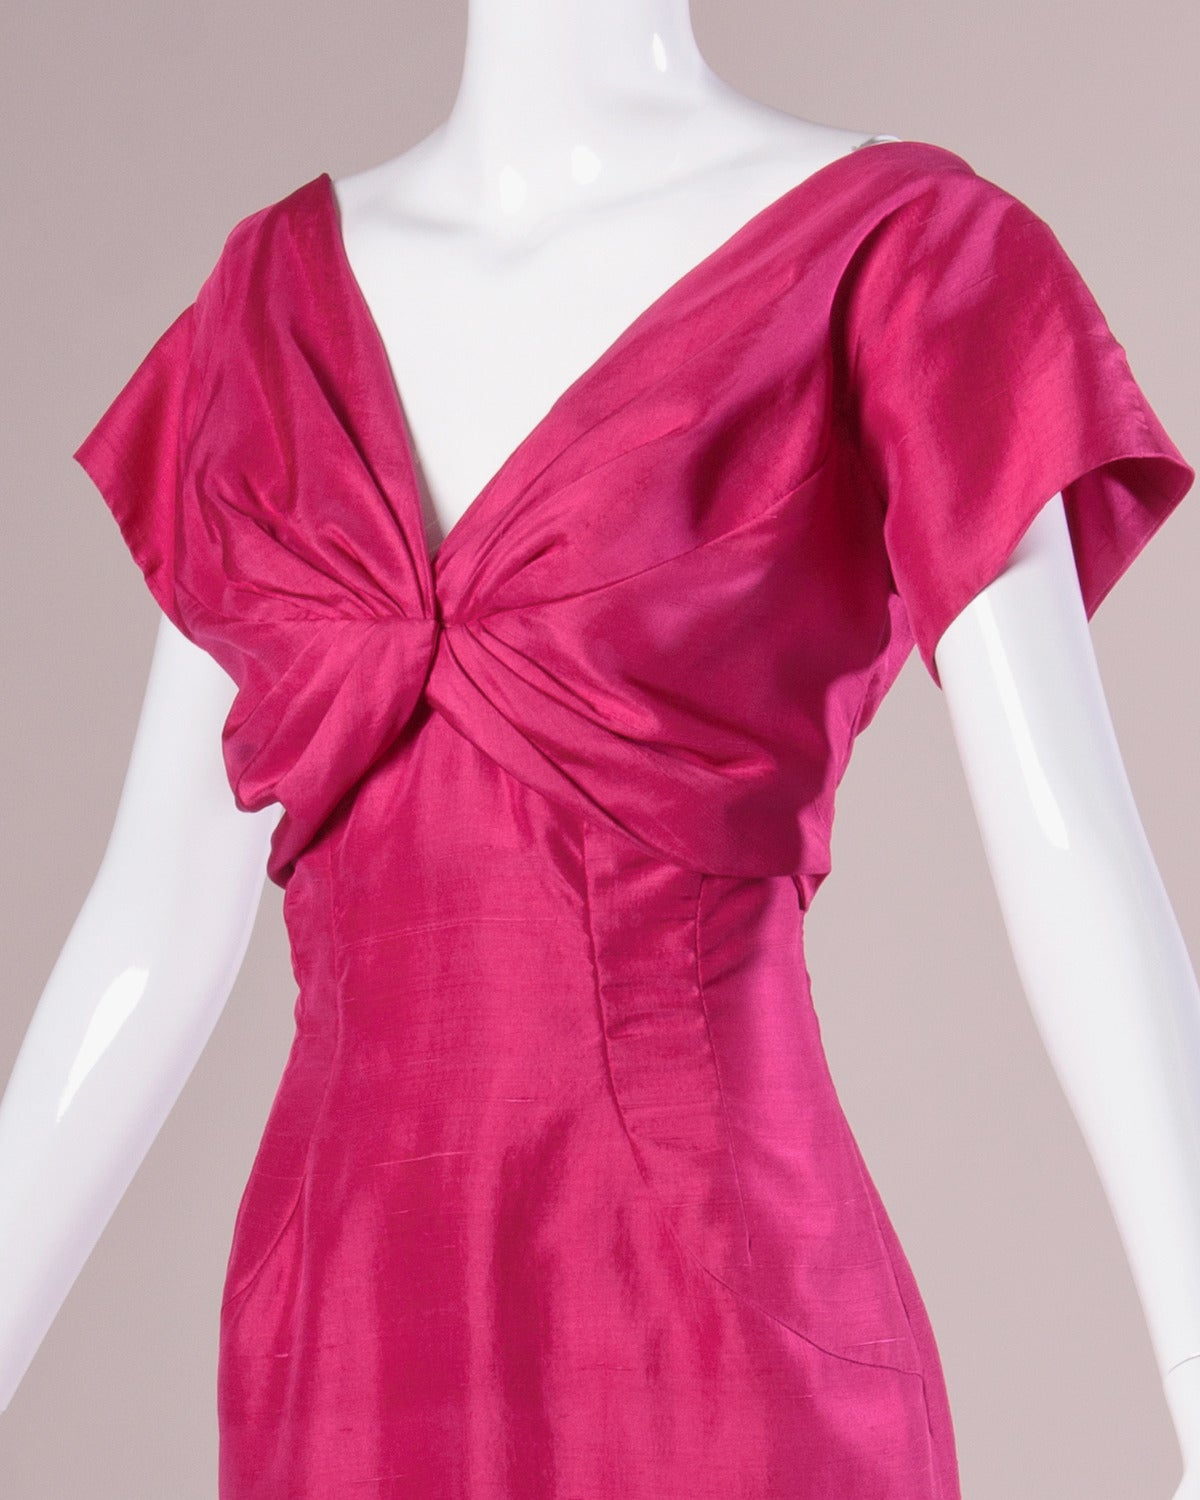 Bright fuchsia silk cocktail dress with short sleeves and gathered bust by Sydney North.